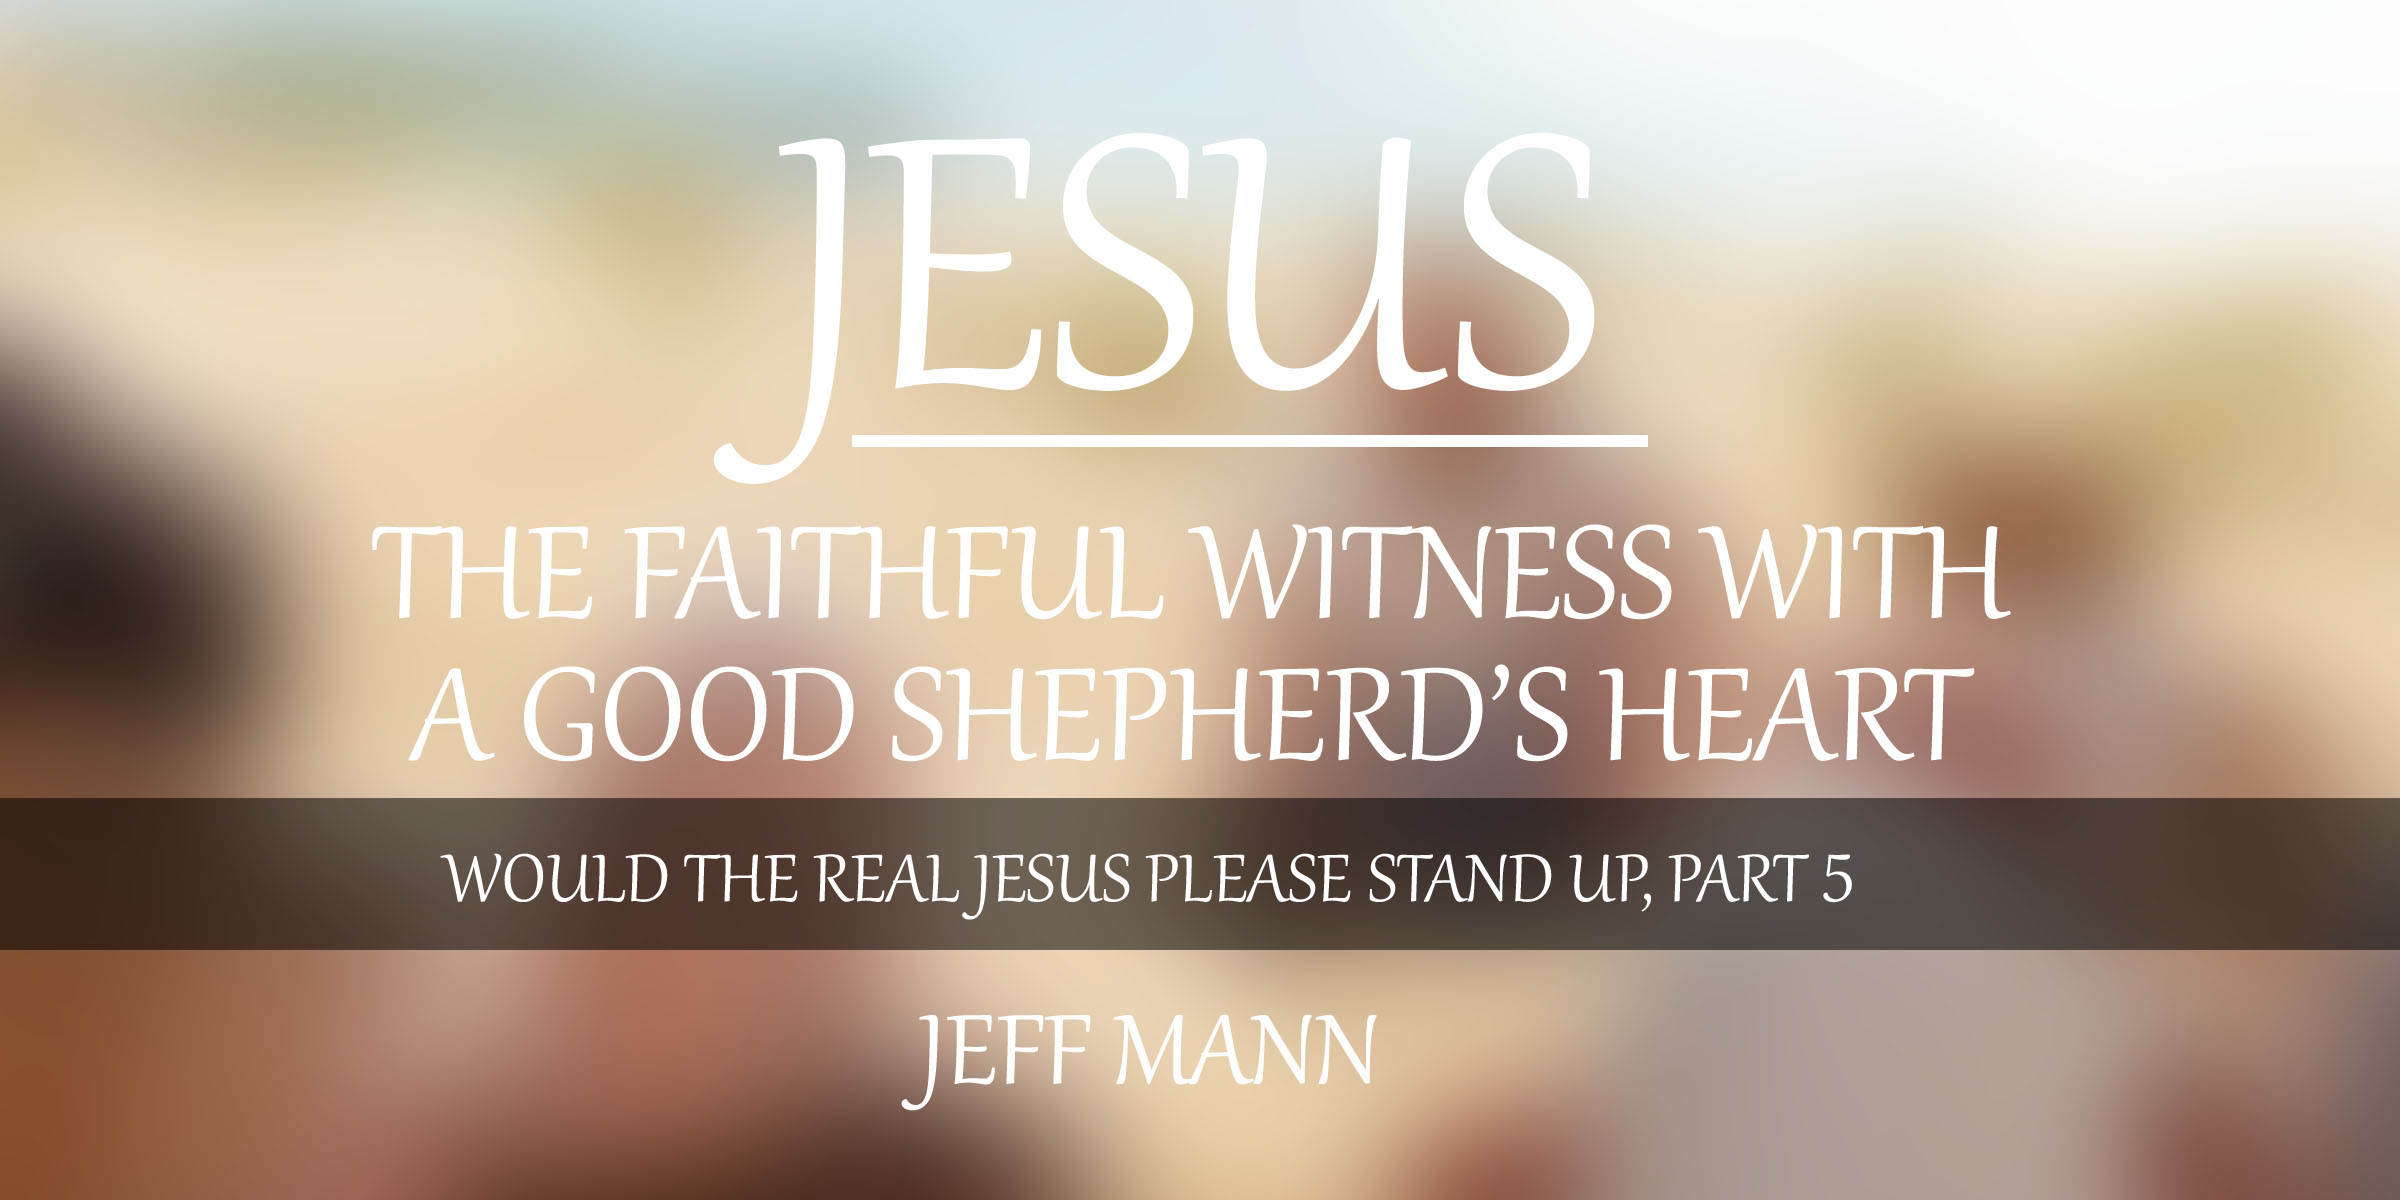 Jesus, the Faithful Witness with a Good Shepherd's Heart